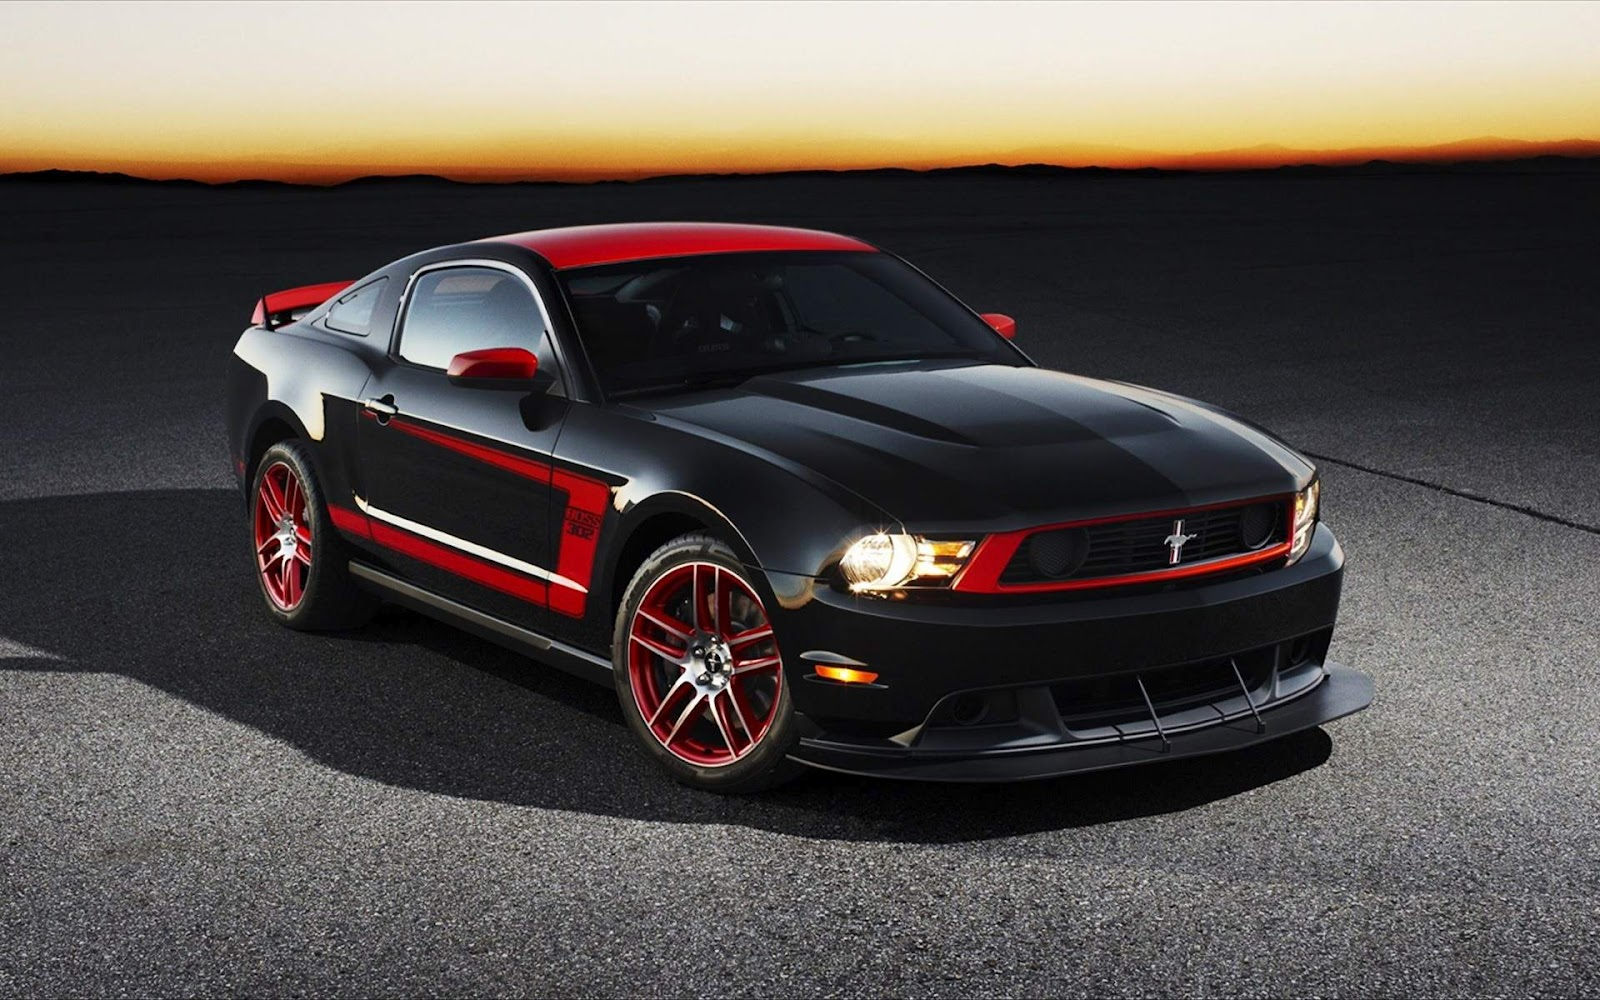 2012 Ford Mustang Beautiful Car, All Legend. Zero